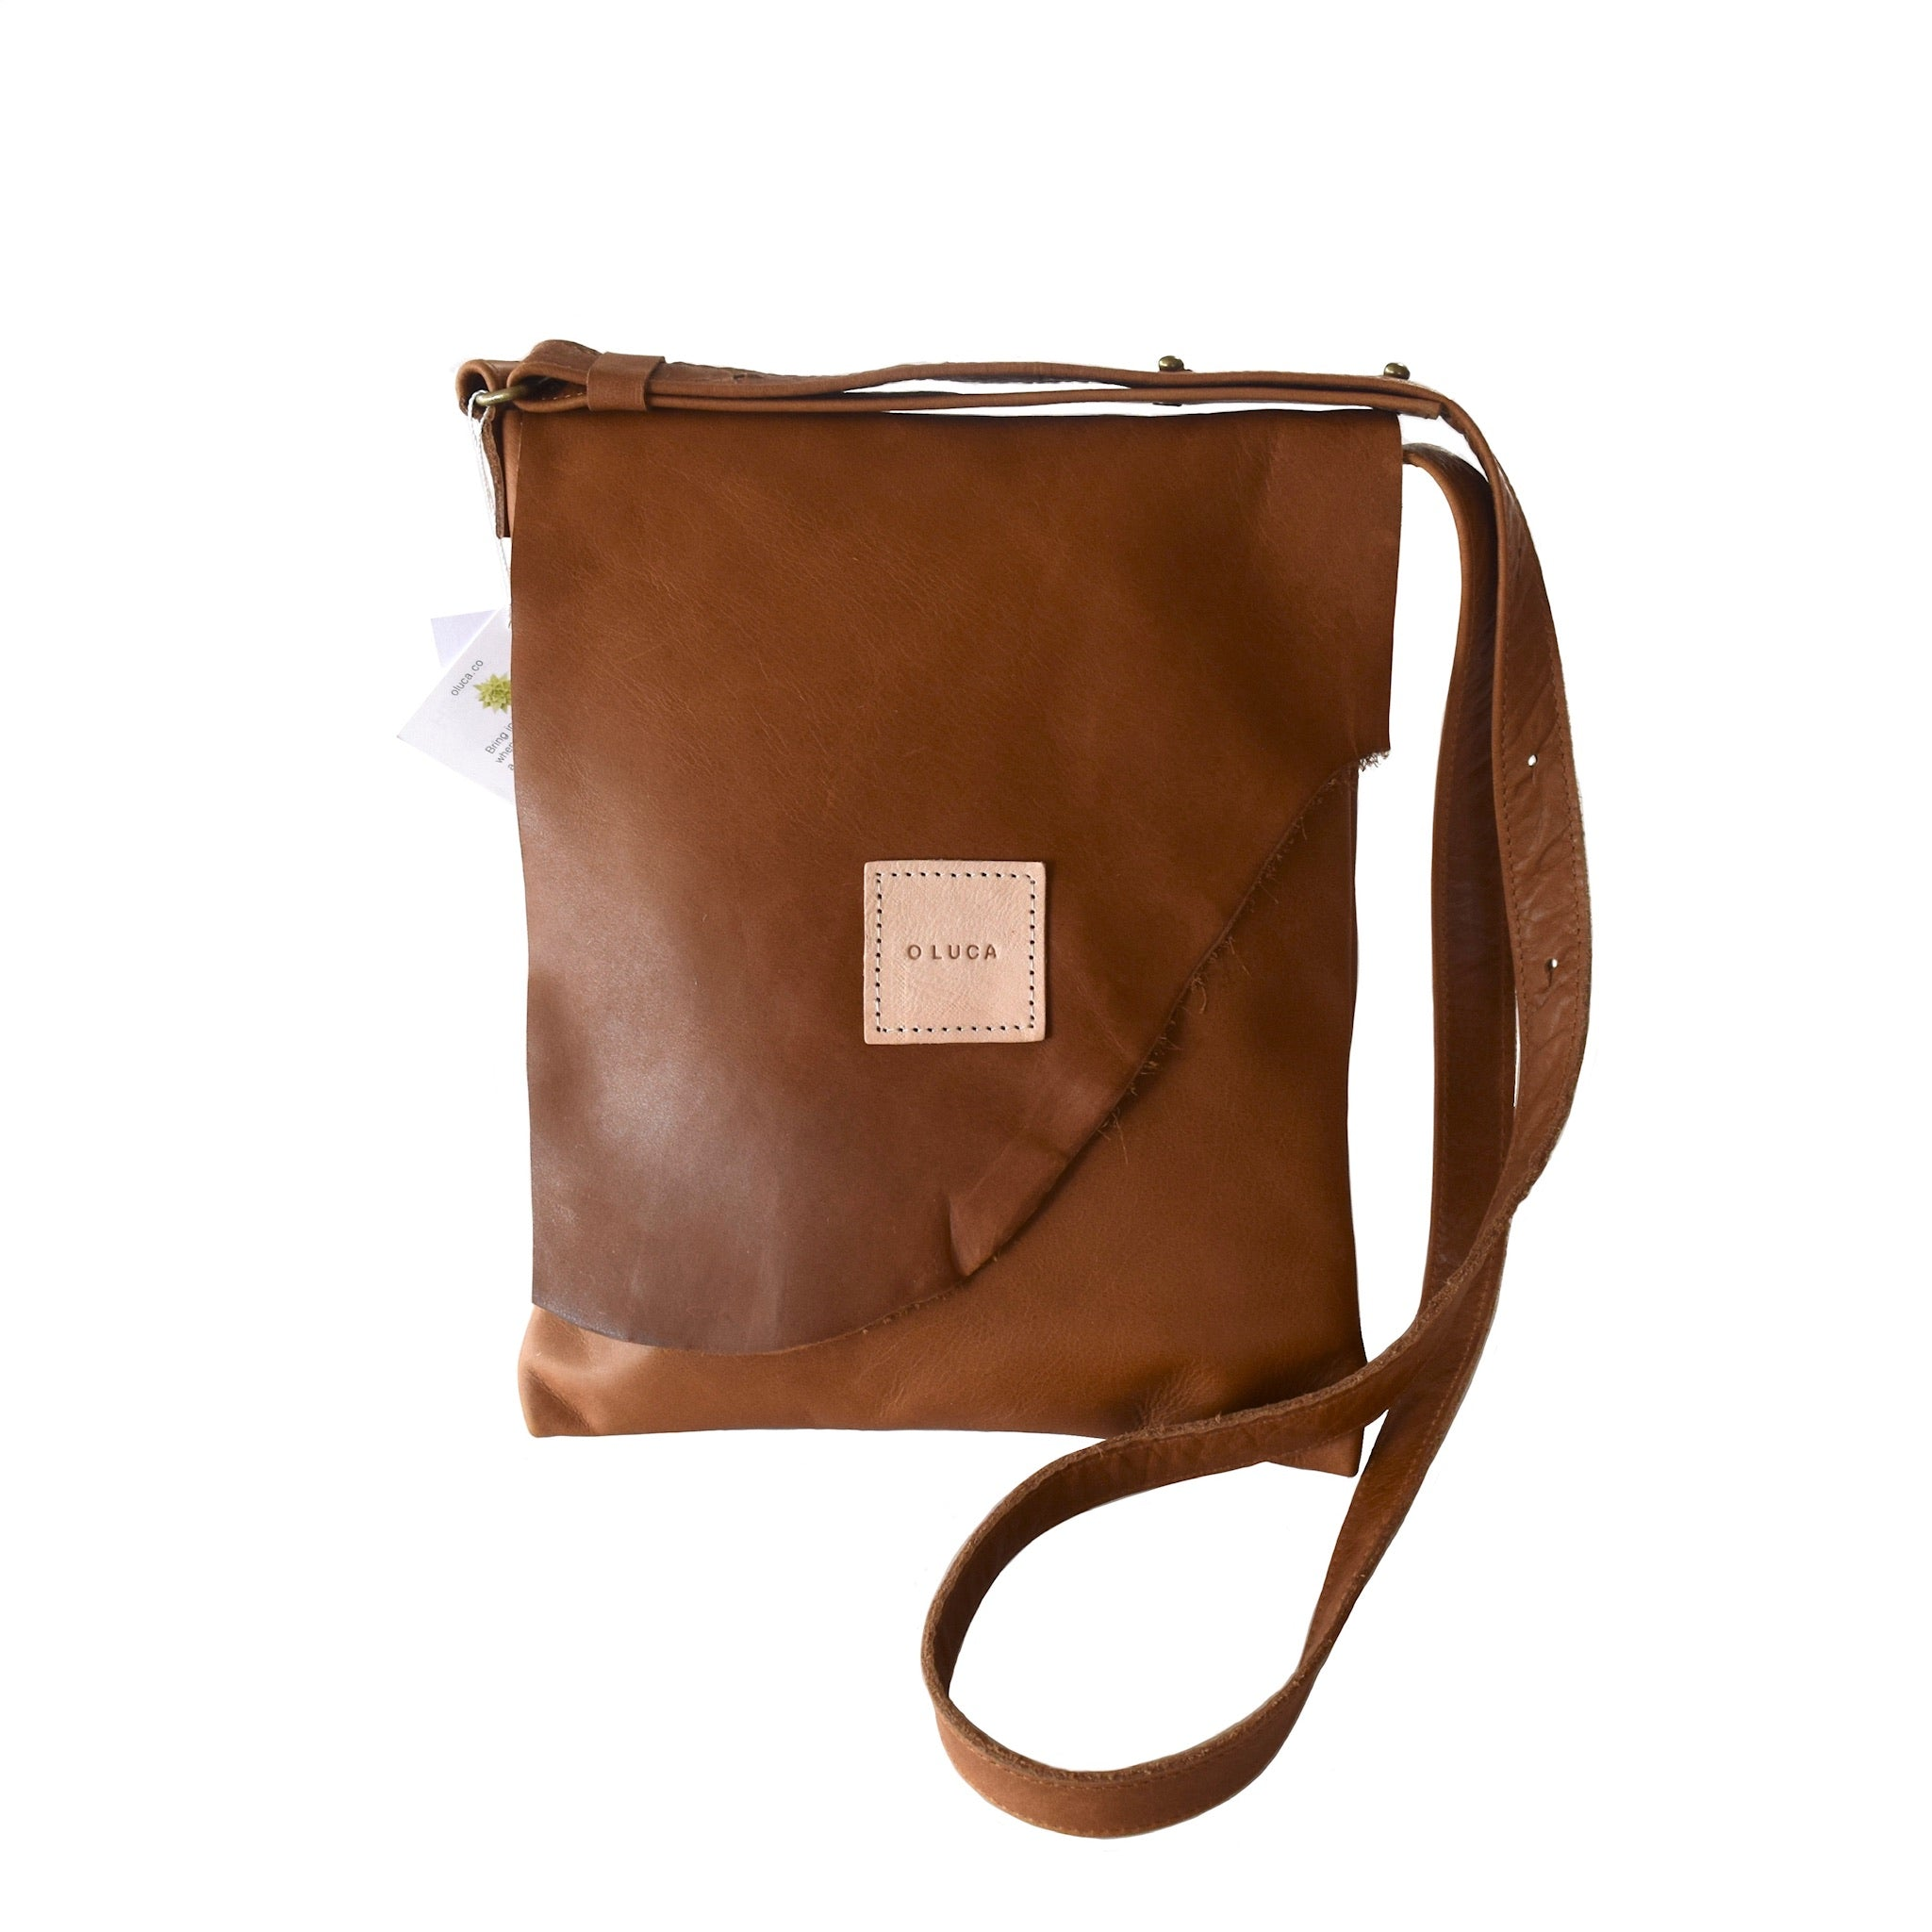 O OSLO - medium crossbody purse handbag - caramel